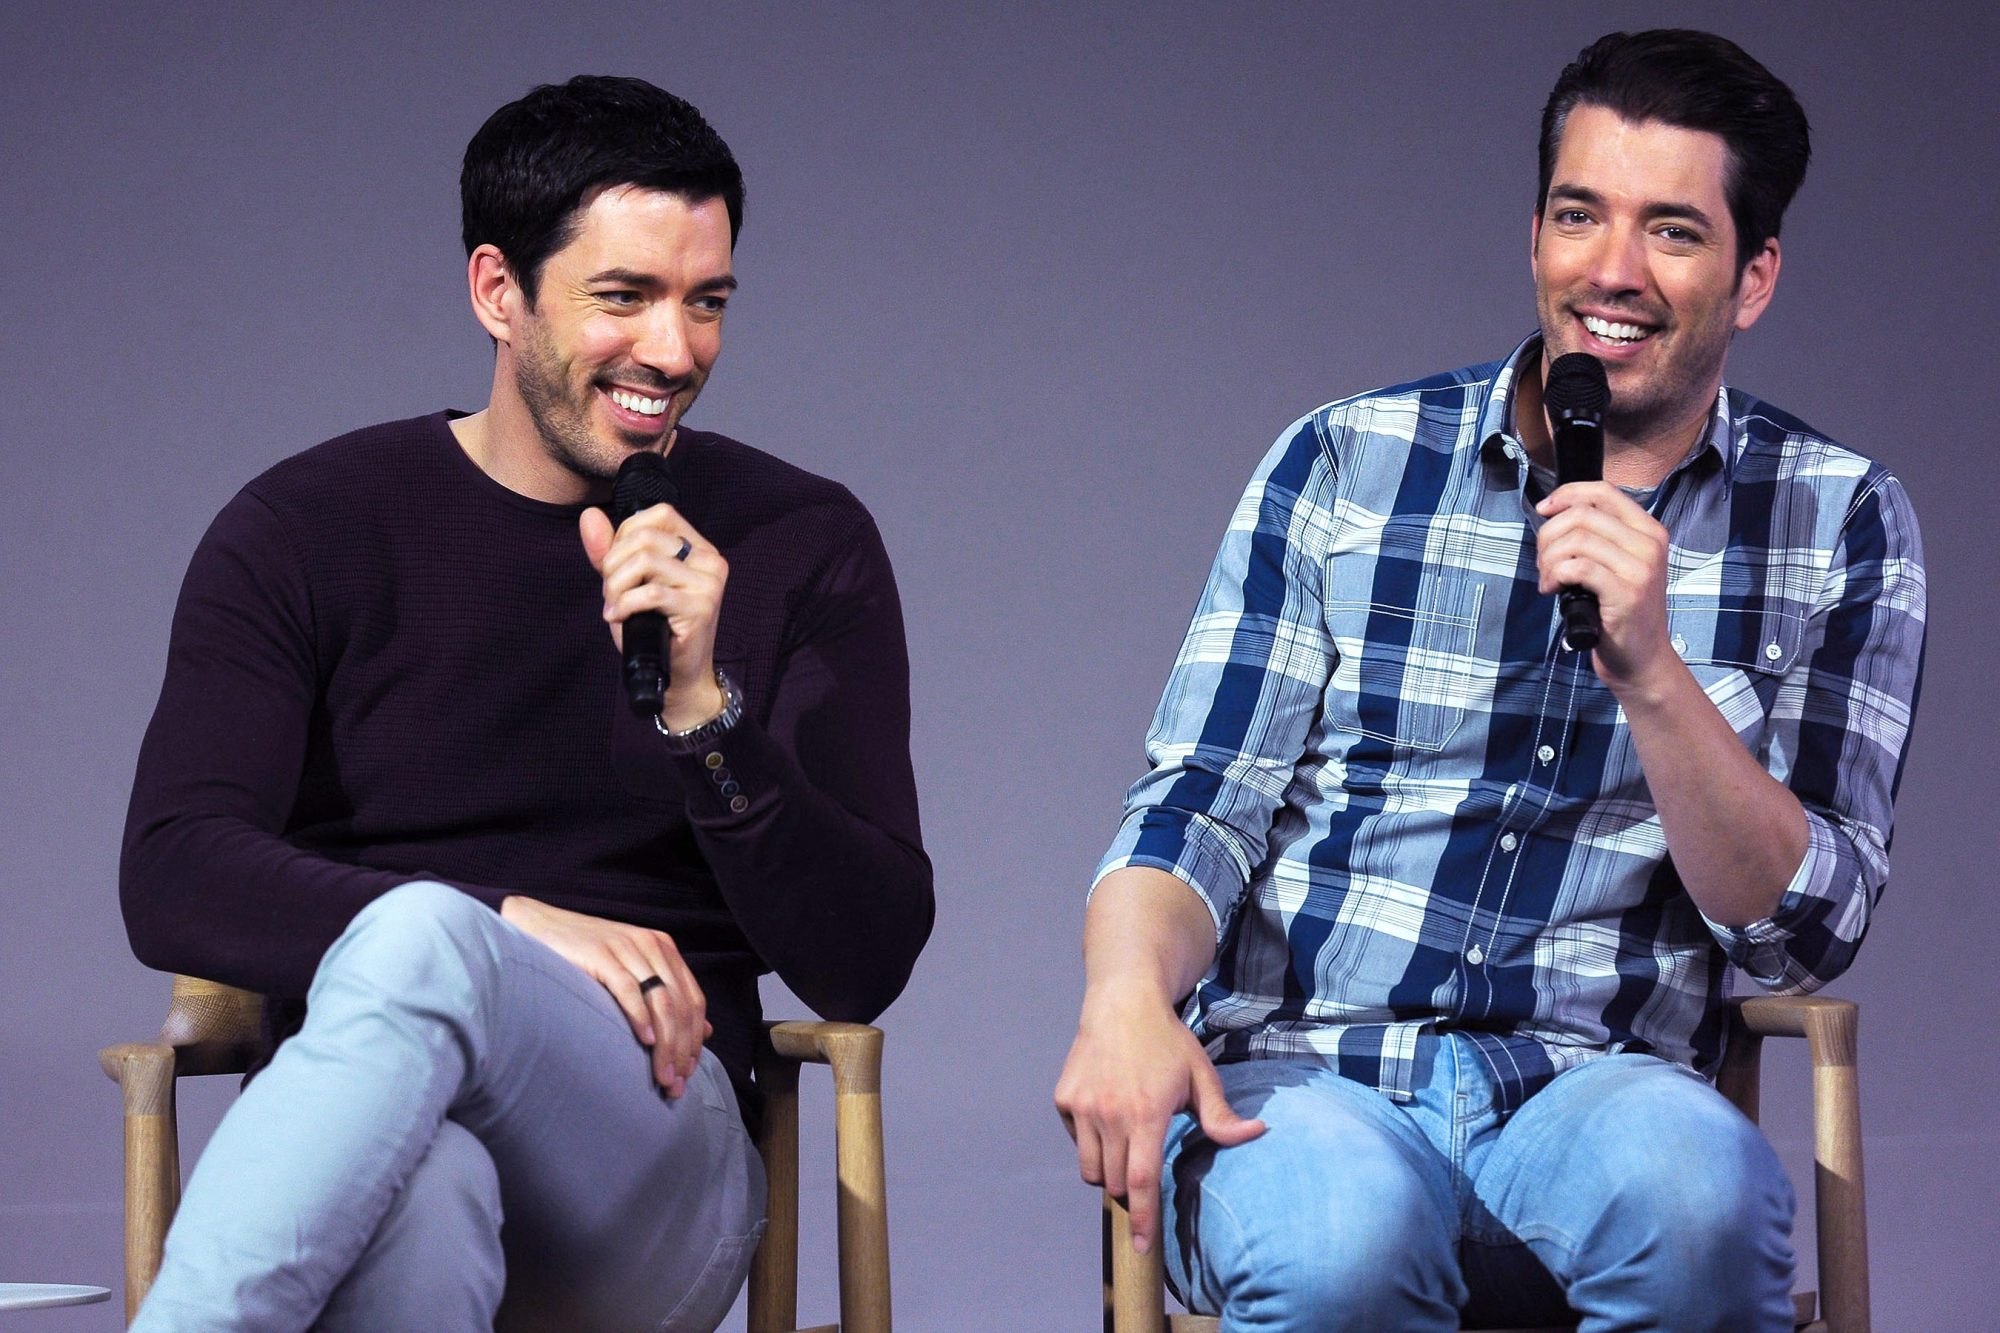 Apple Store Soho Presents: Meet the Property Brothers: Drew Scott And Jonathan Scott